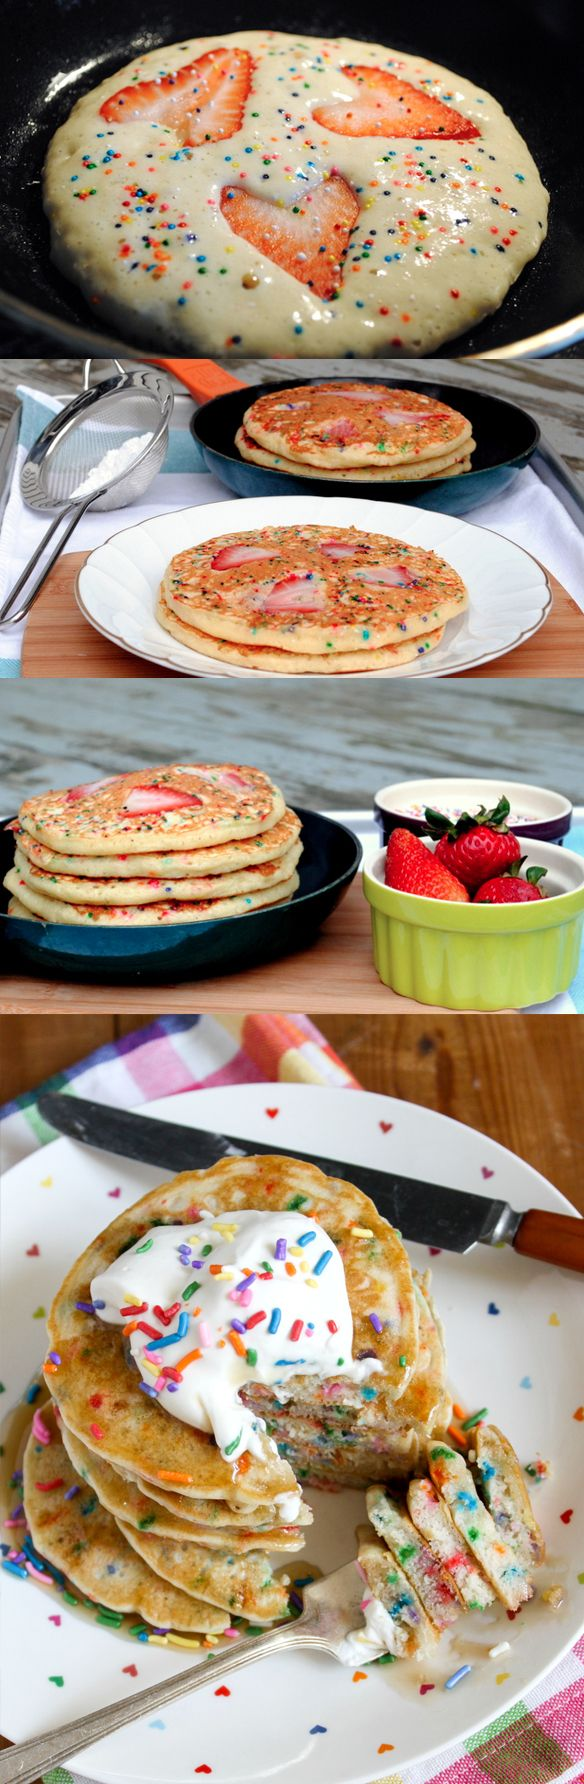 Adorable birthday breakfast ideas